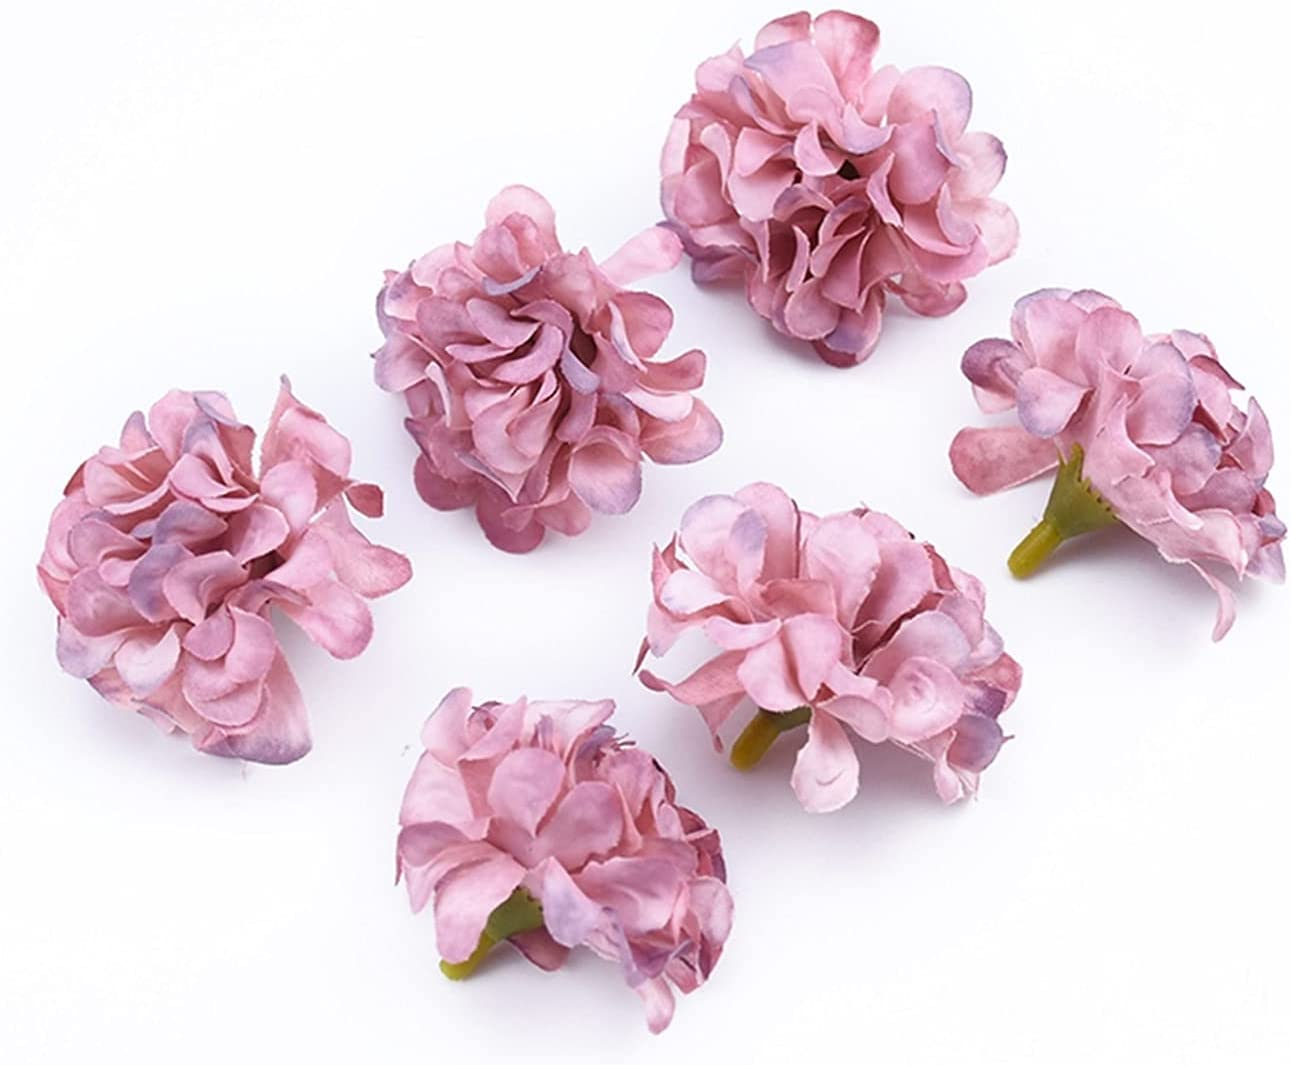 Artificial specialty shop Flowers 10 Pieces Small Fashionable Hydrangeas